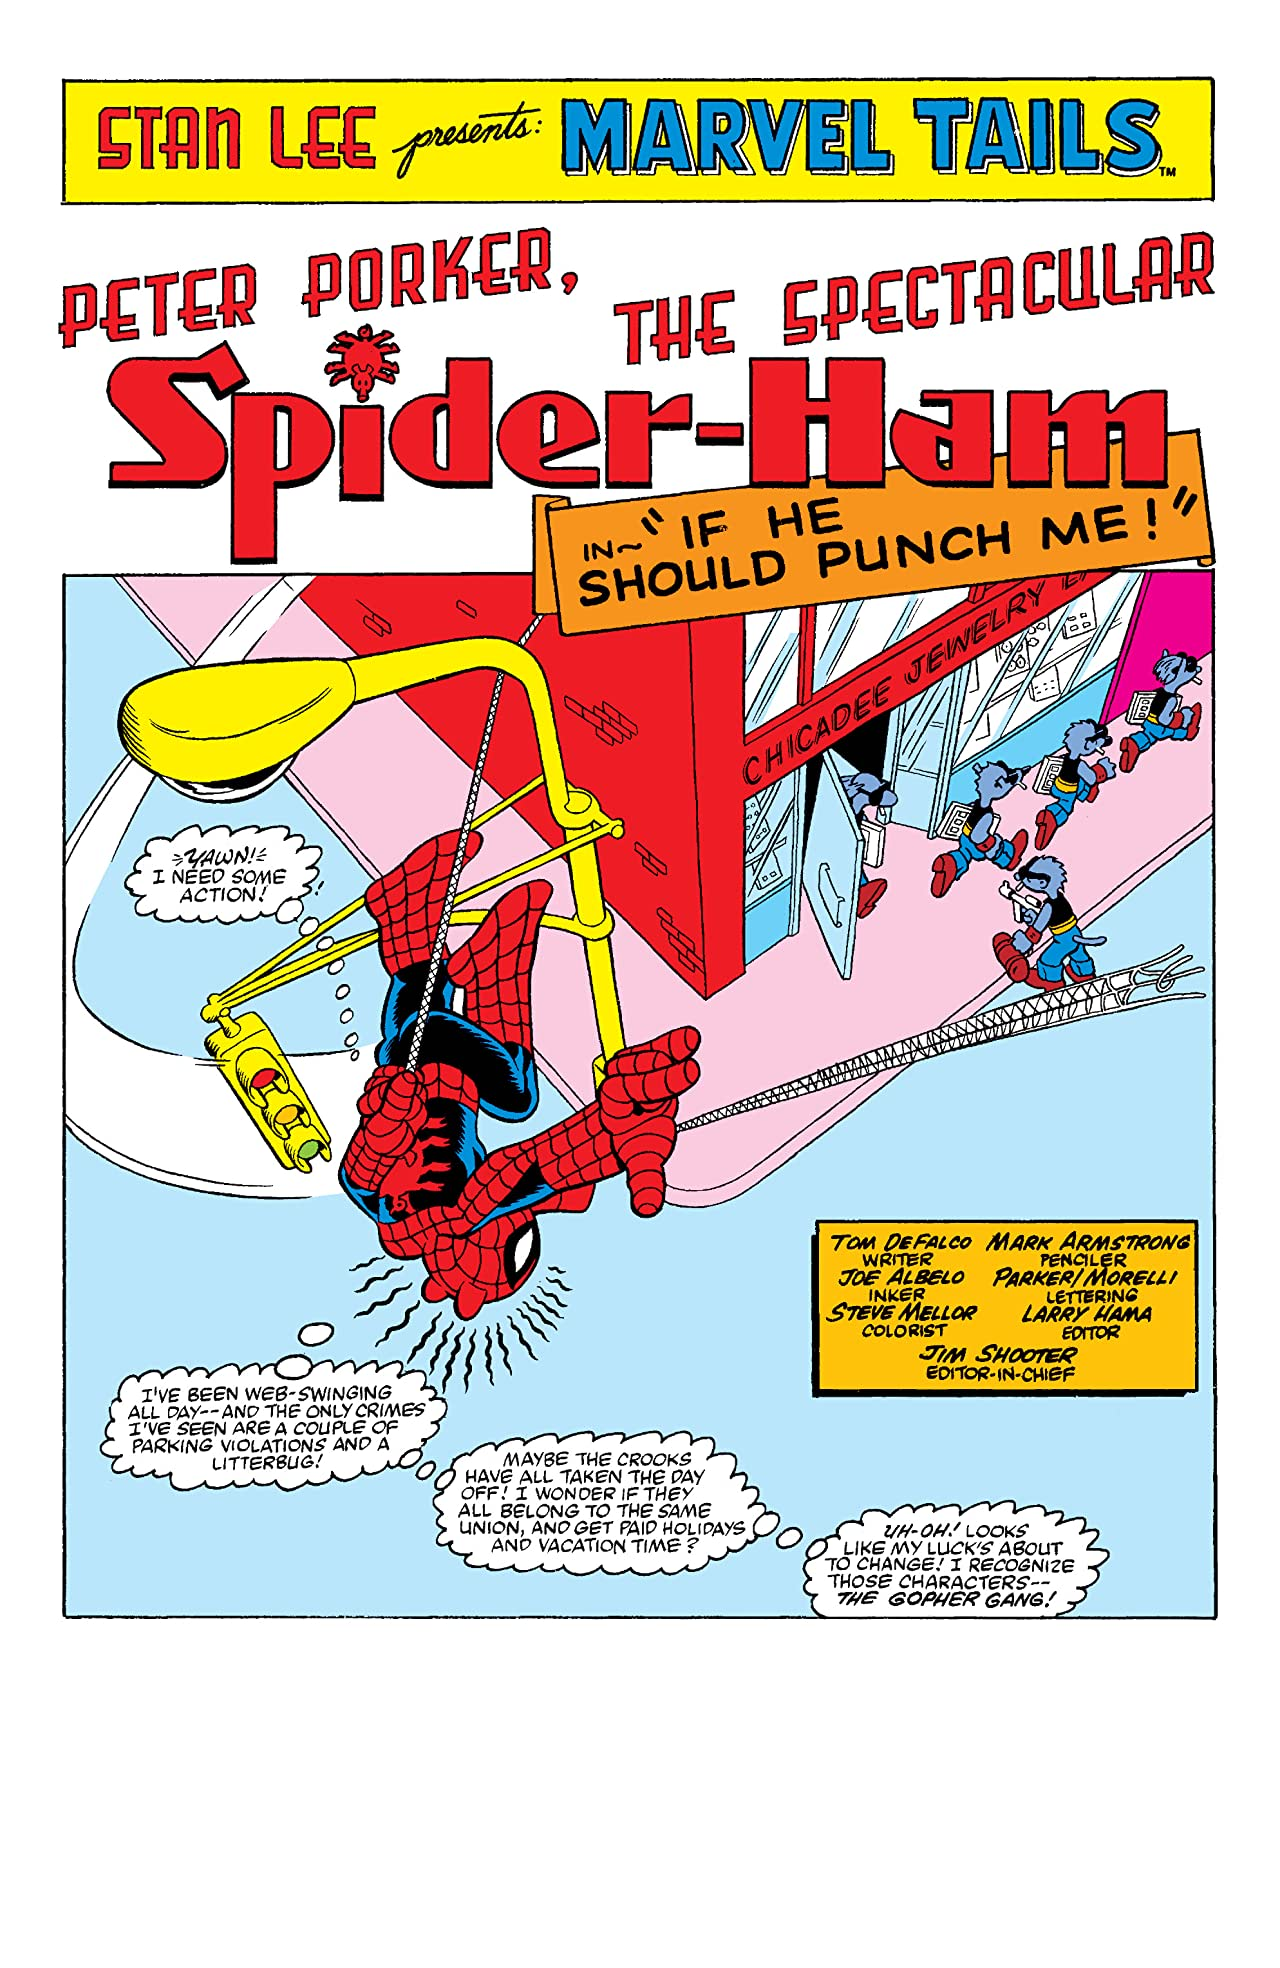 Peter Porker, The Spectacular Spider-Ham: The Complete Collection Vol. 1